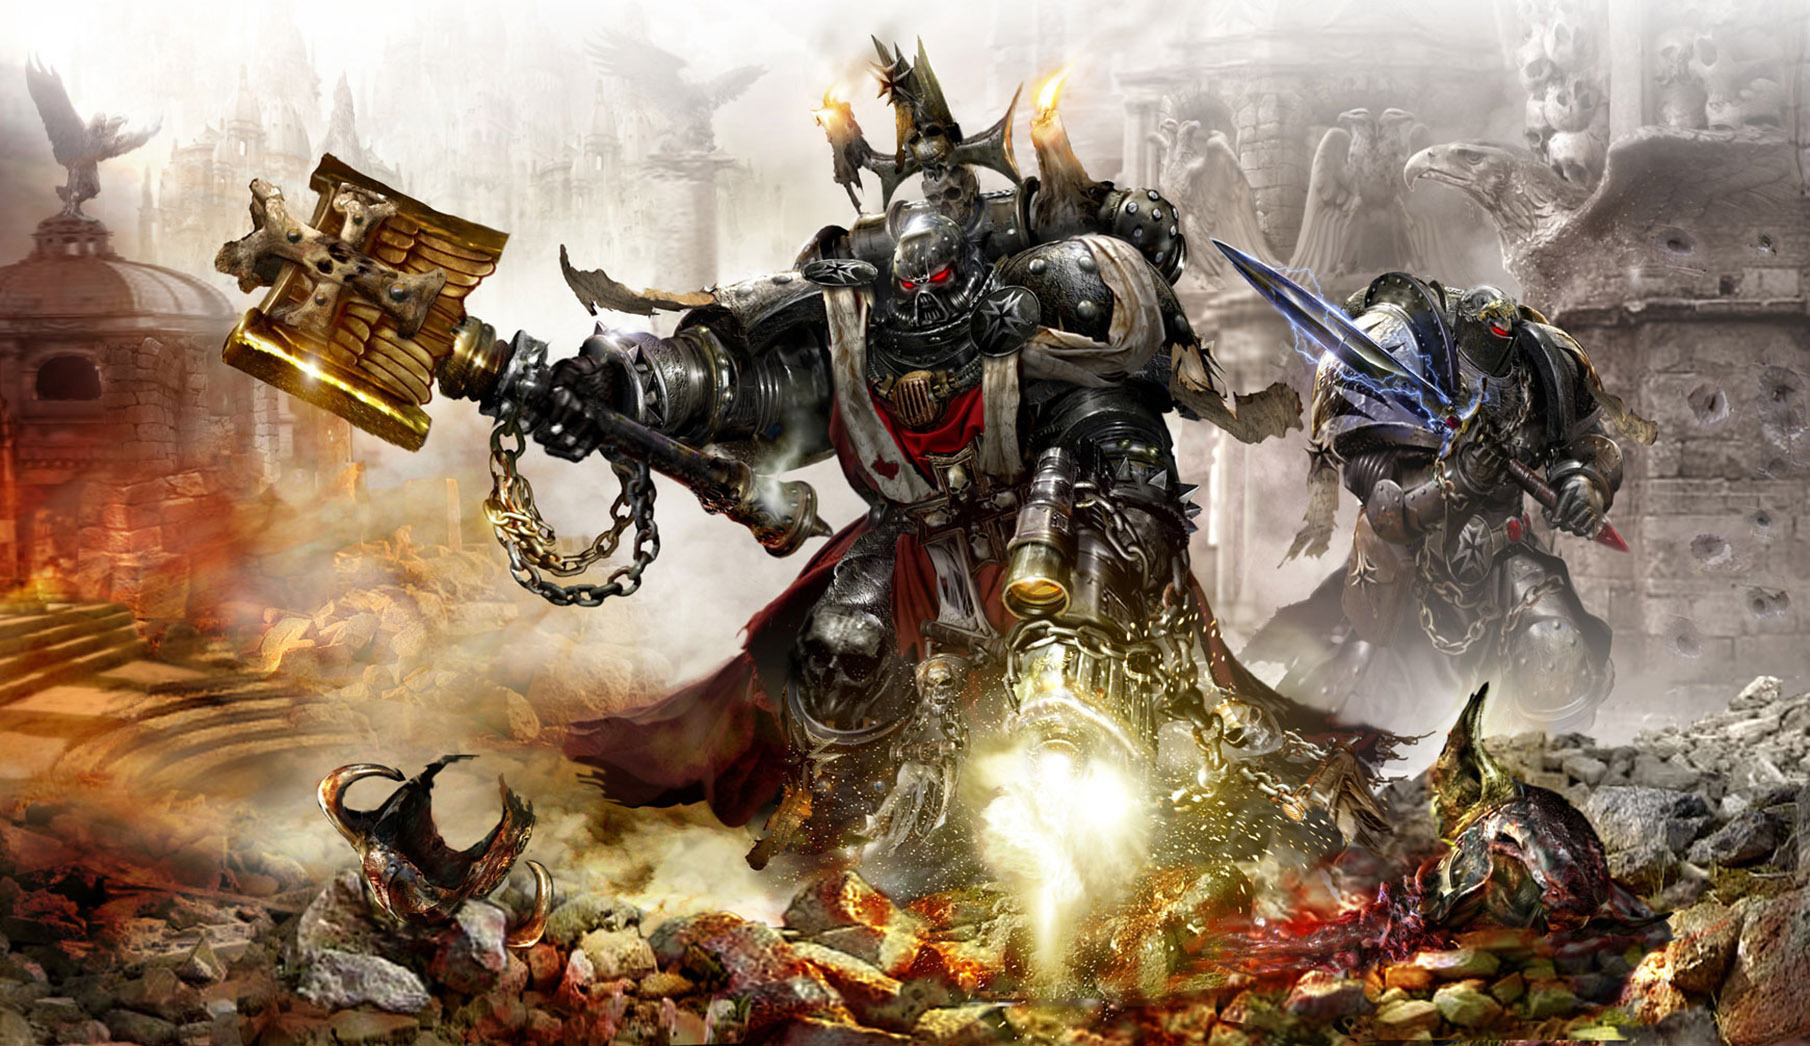 17+ images about warhammer on Pinterest | Helmets, Warhammer 40K